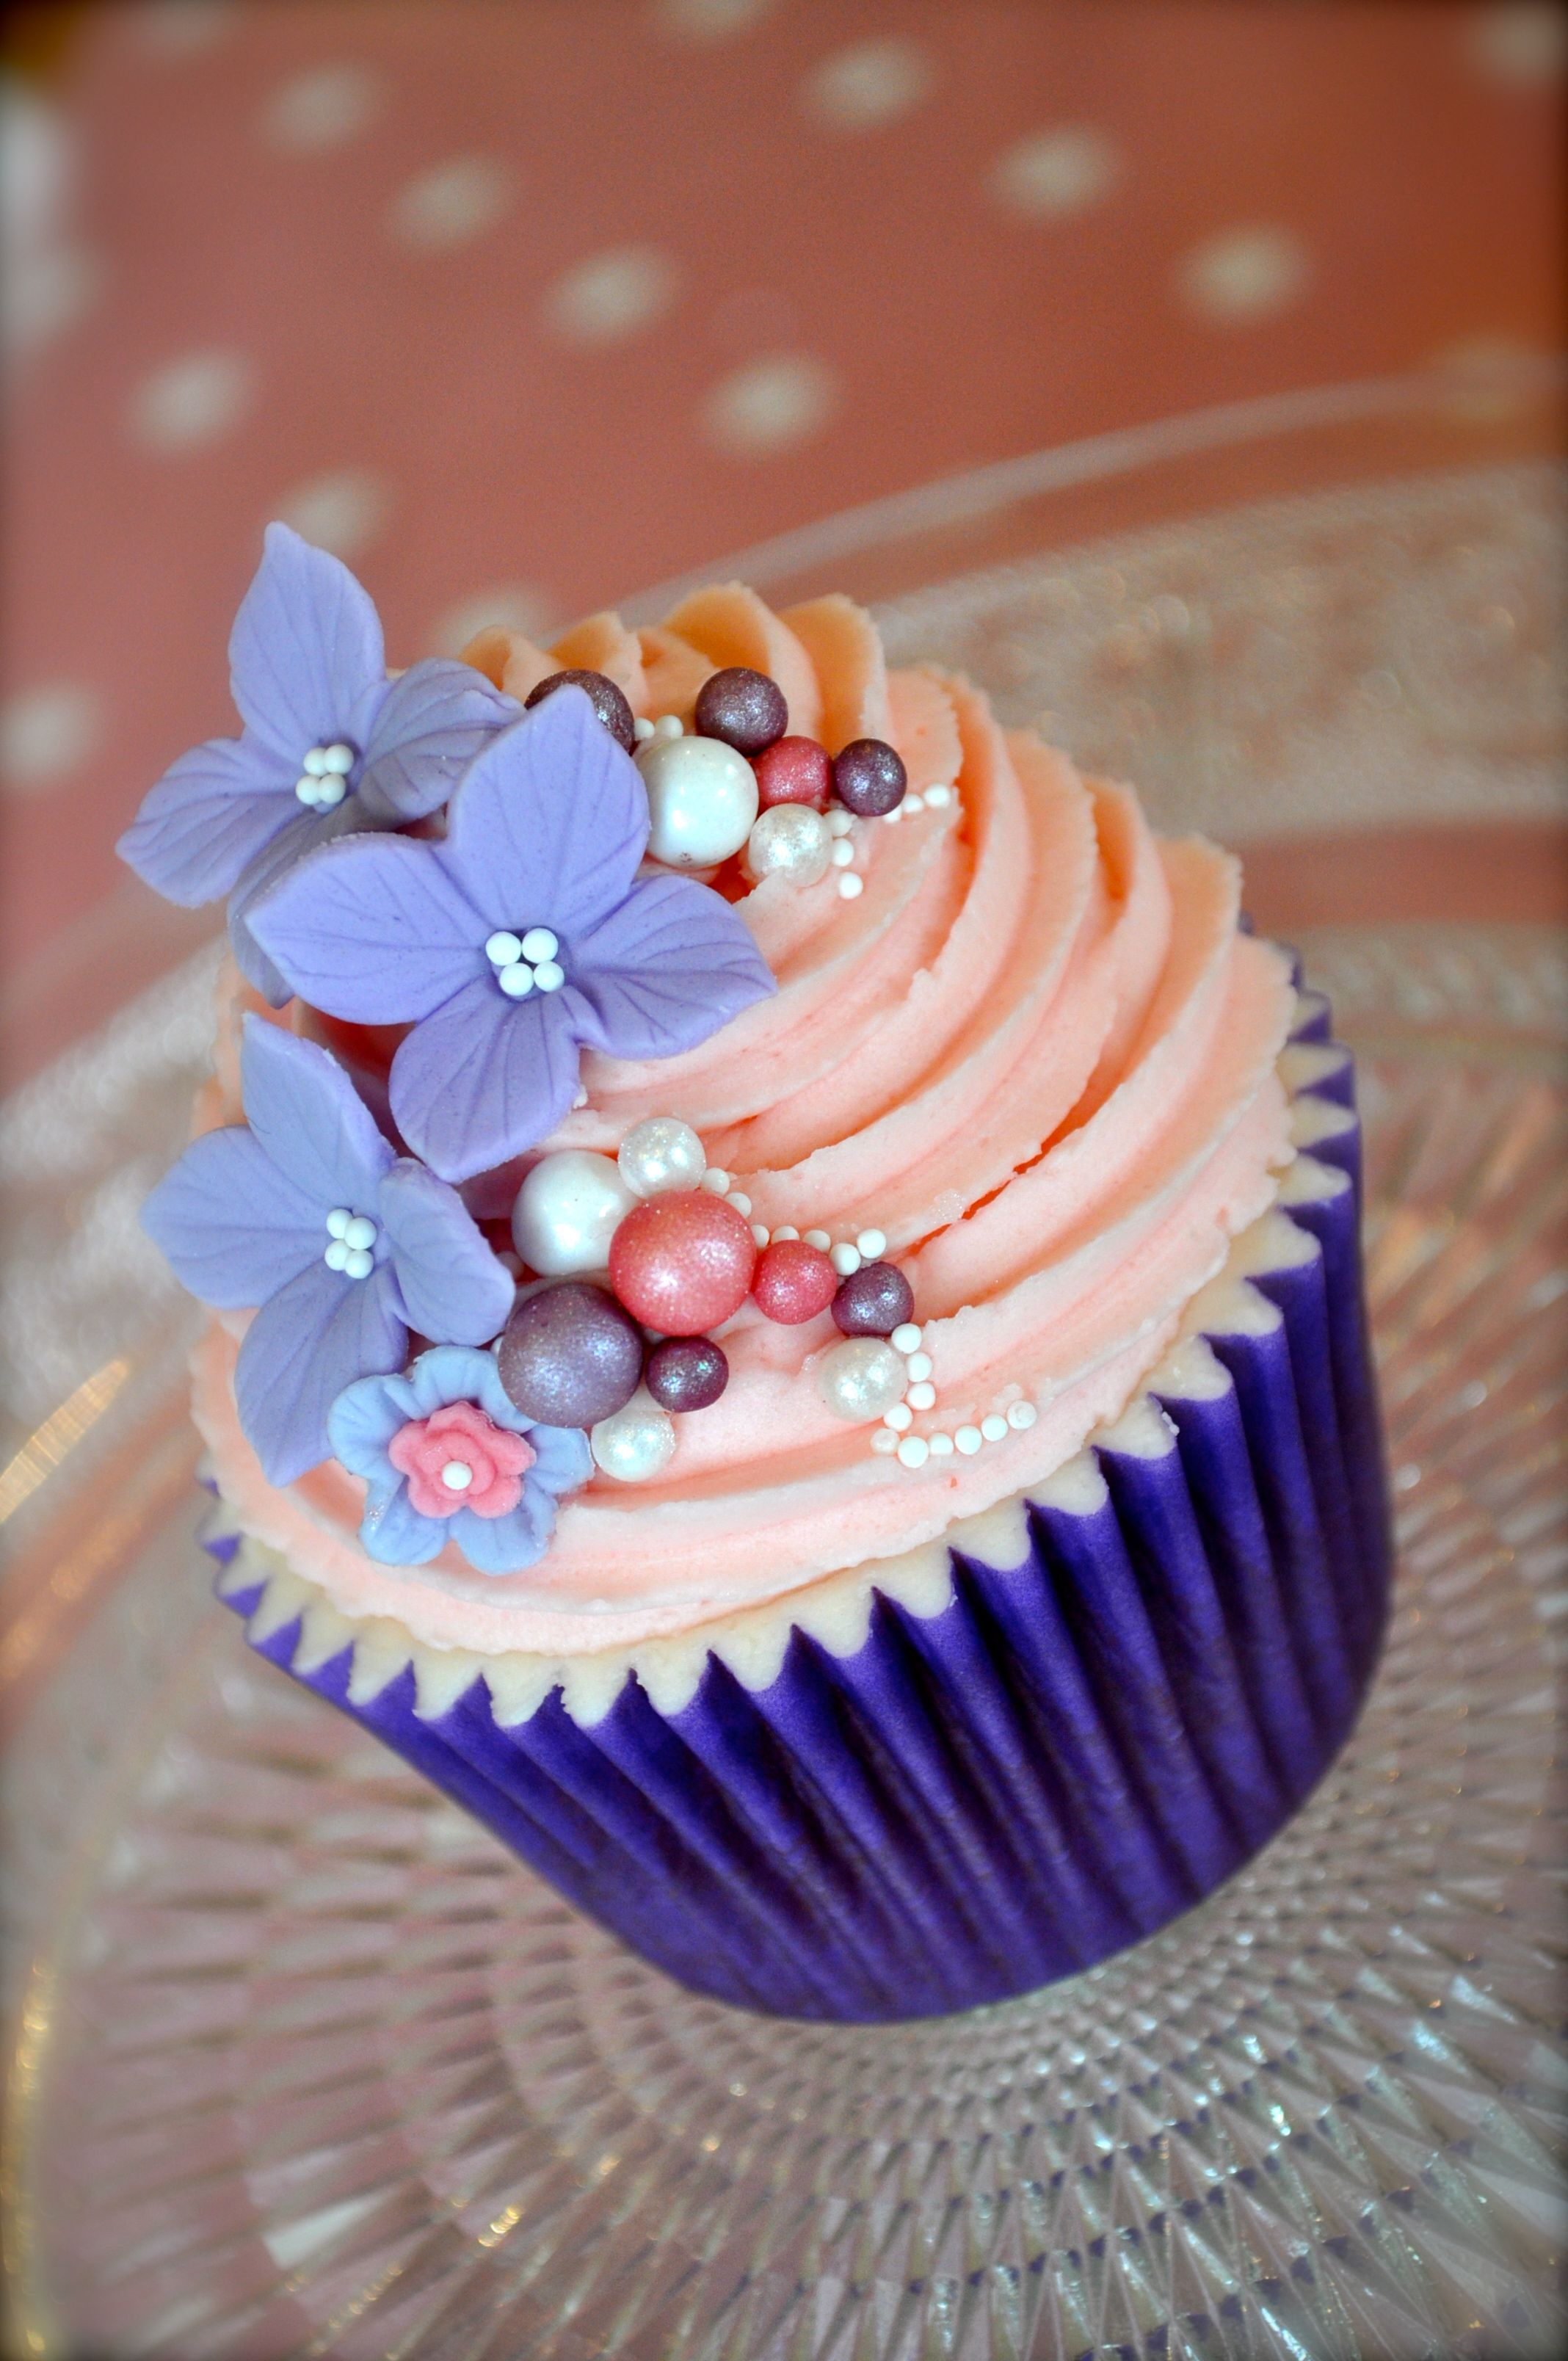 Decoration Pate A Sucre Cupcake Oh Pretty Cupcake Gateaux Et Cupcakes Cupcakes